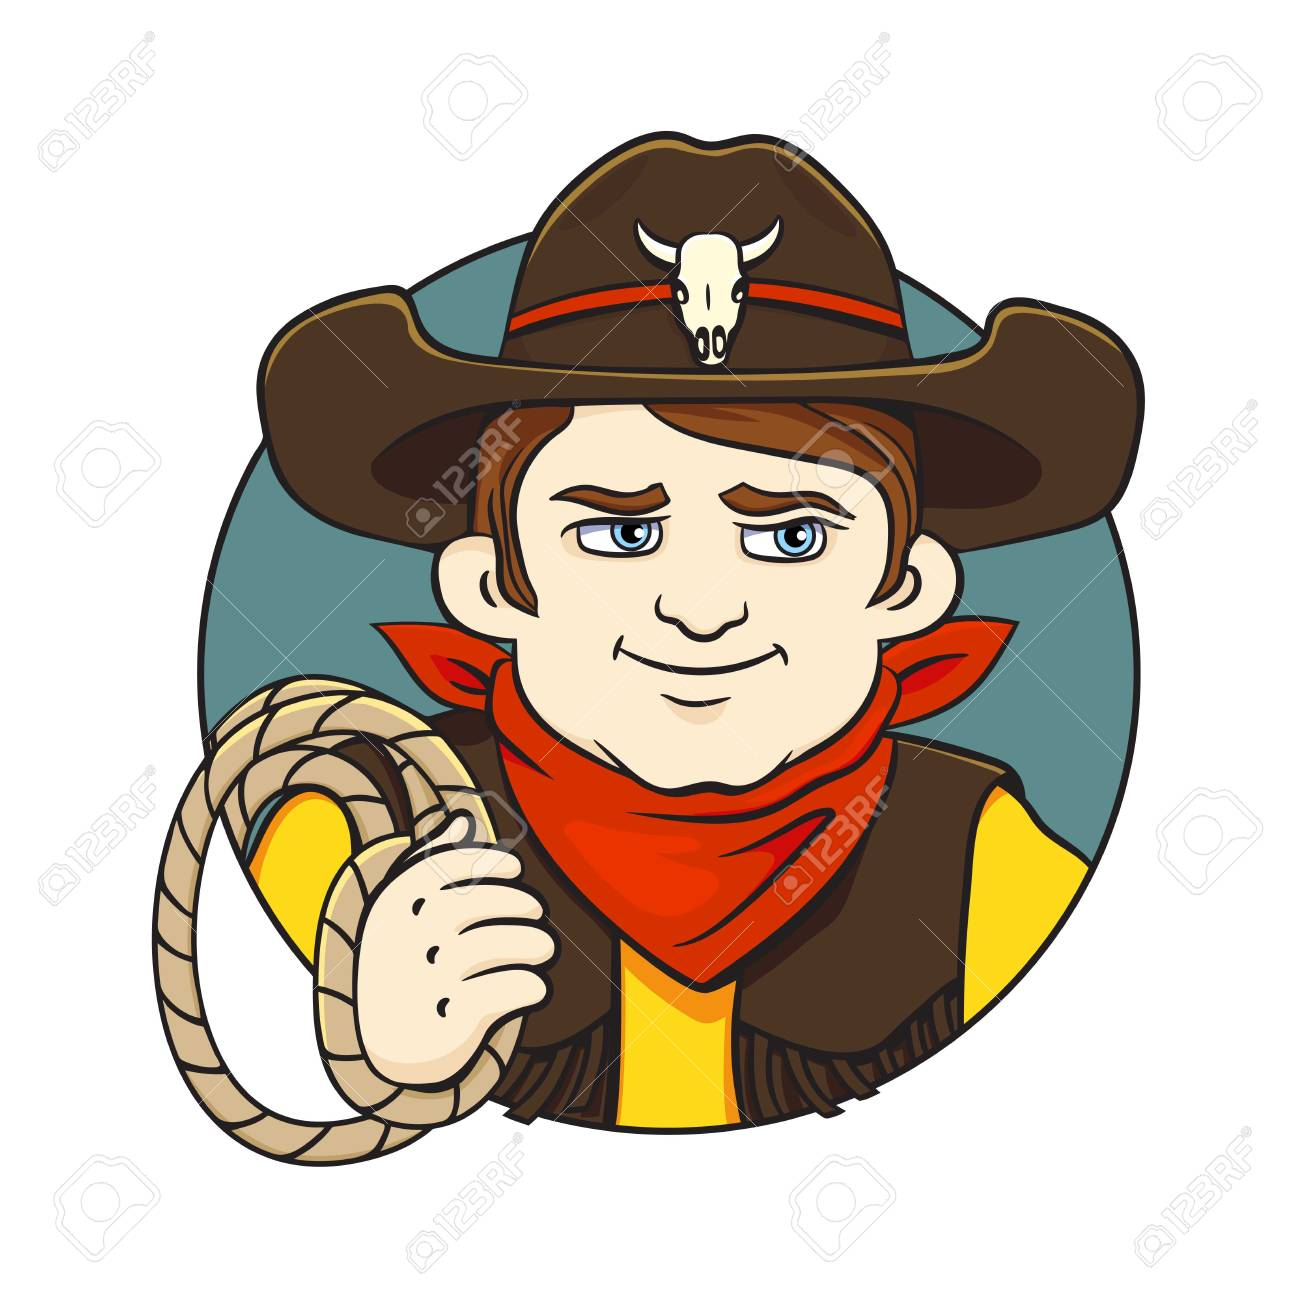 e68cd144499 Colored in cartoon style vector illustration with cowboy in hat and lasso  in his hand.